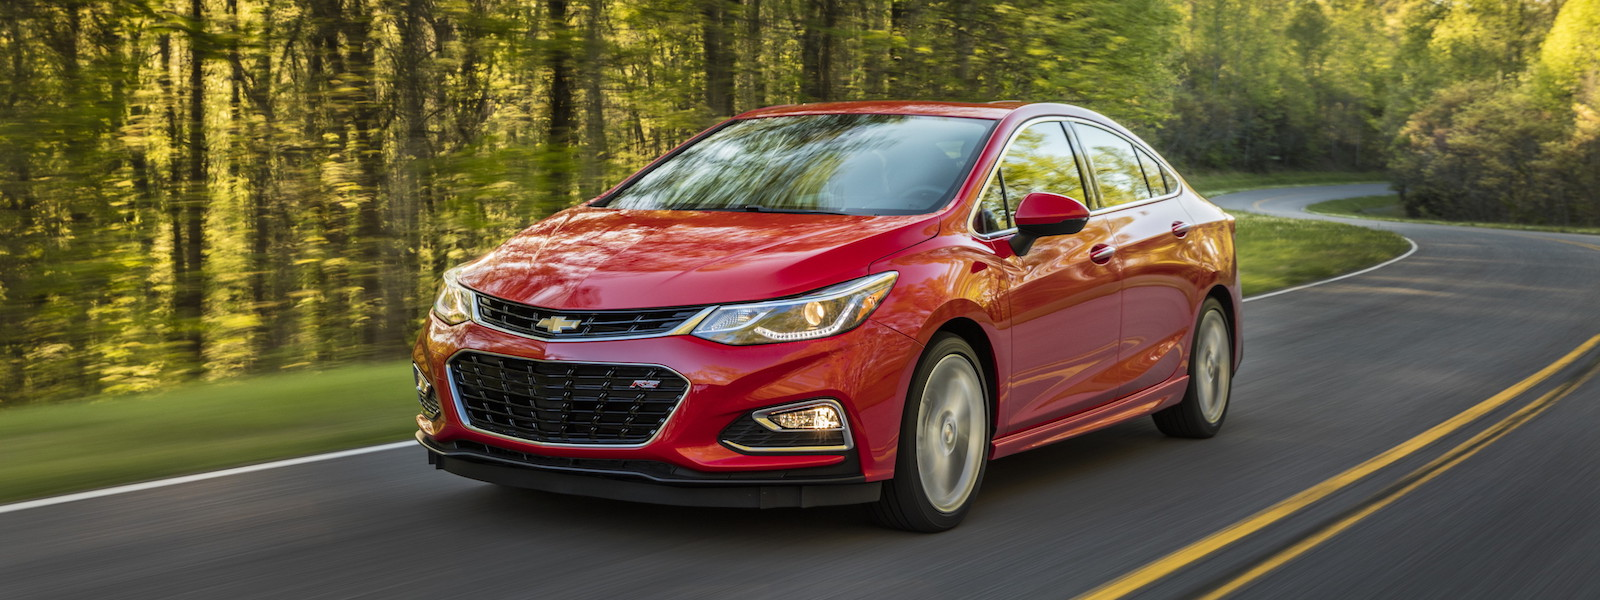 A red 2016 Chevy Cruze is driving on a winding road near Albany, NY.